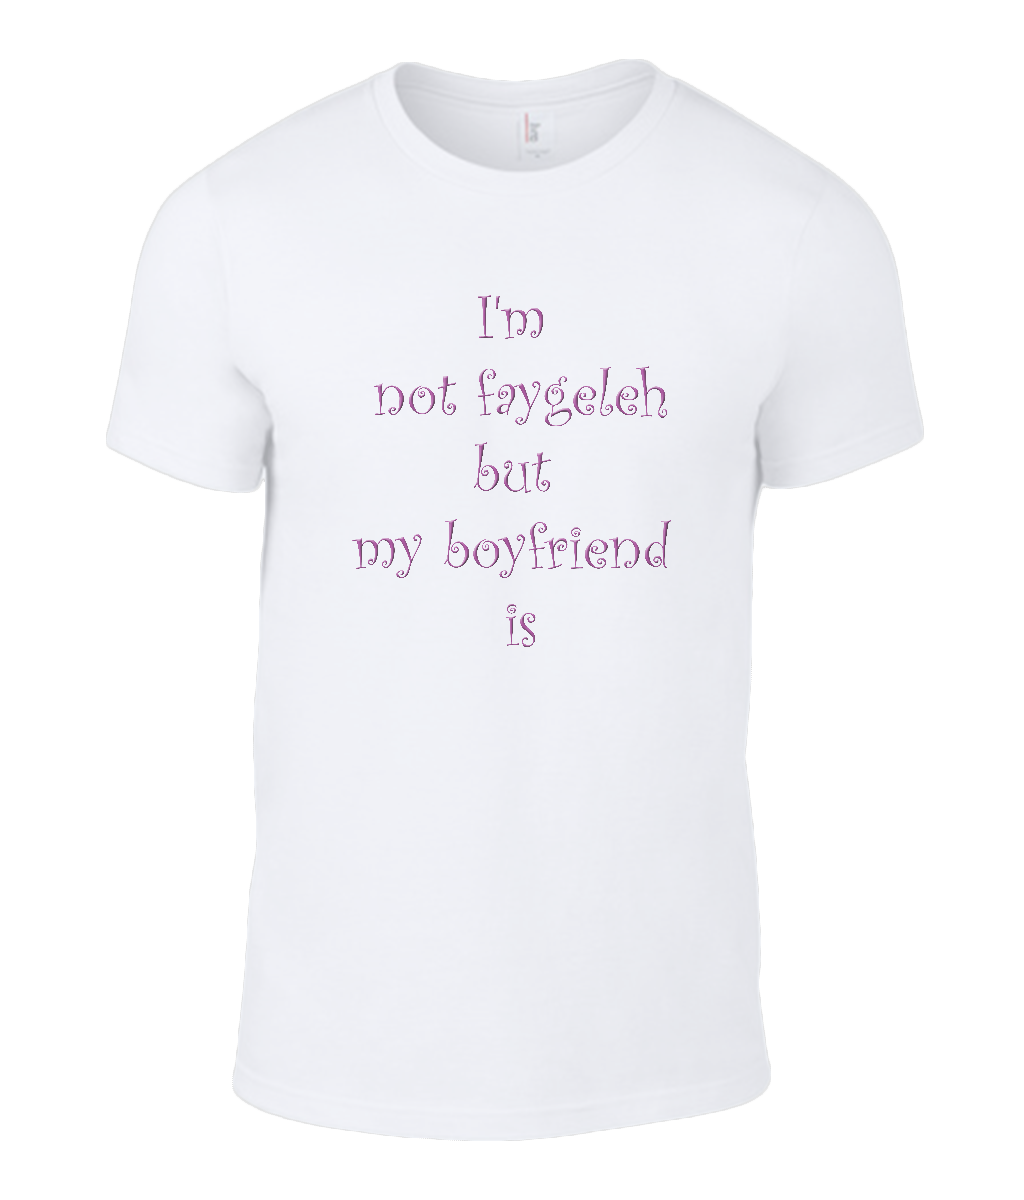 Round Neck T-Shirt - I'm not faygeleigh, my boyfriend is - Lokshen Pudding UK - White